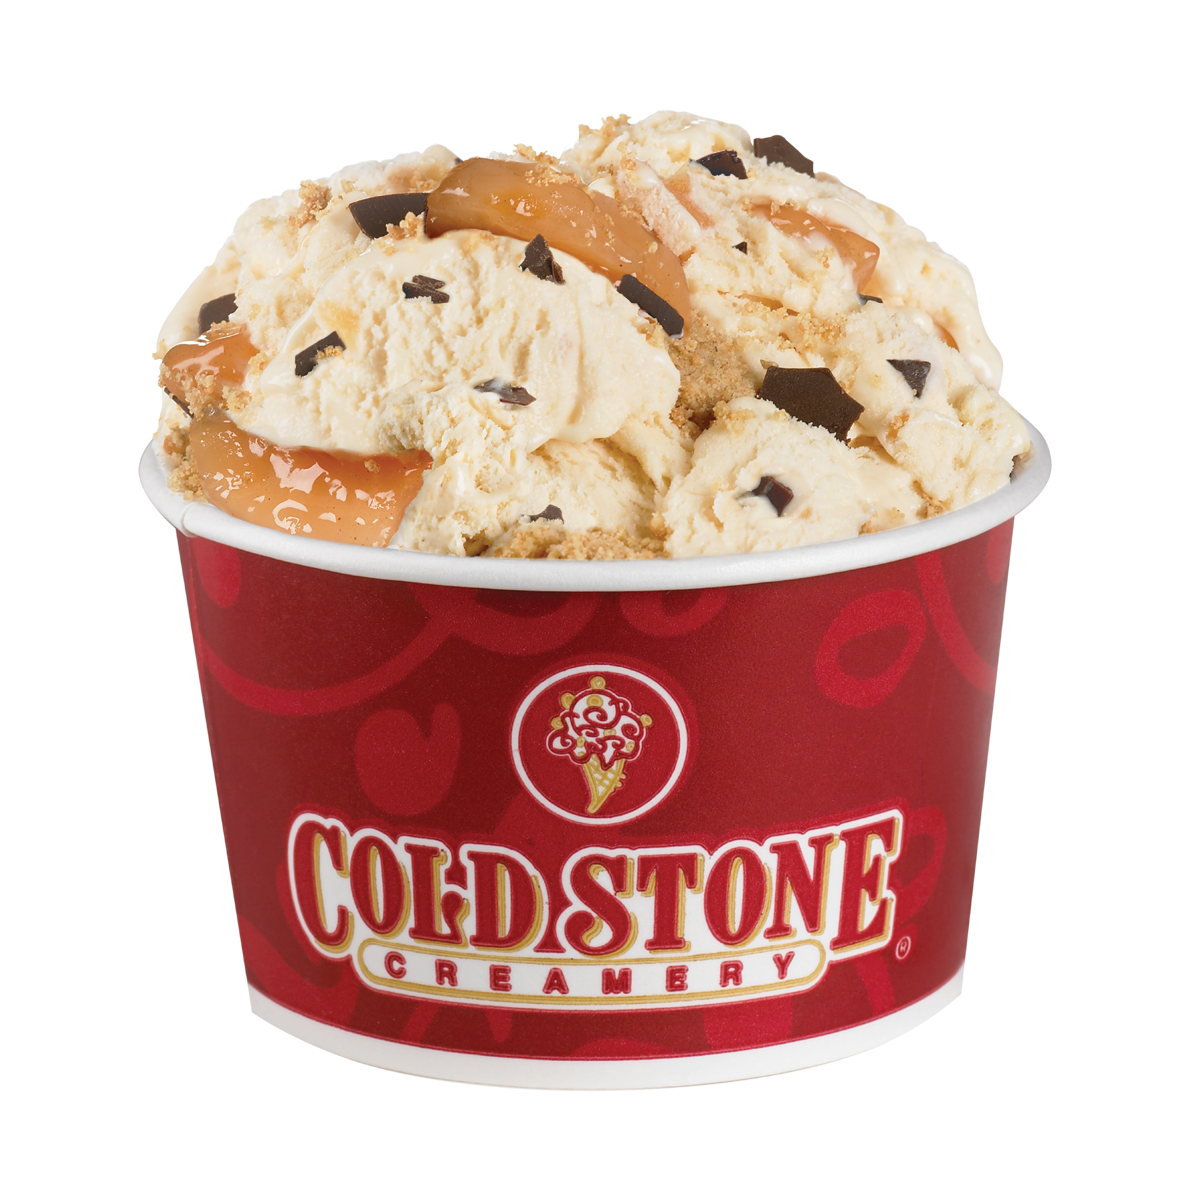 Ice cream coupons cold stone